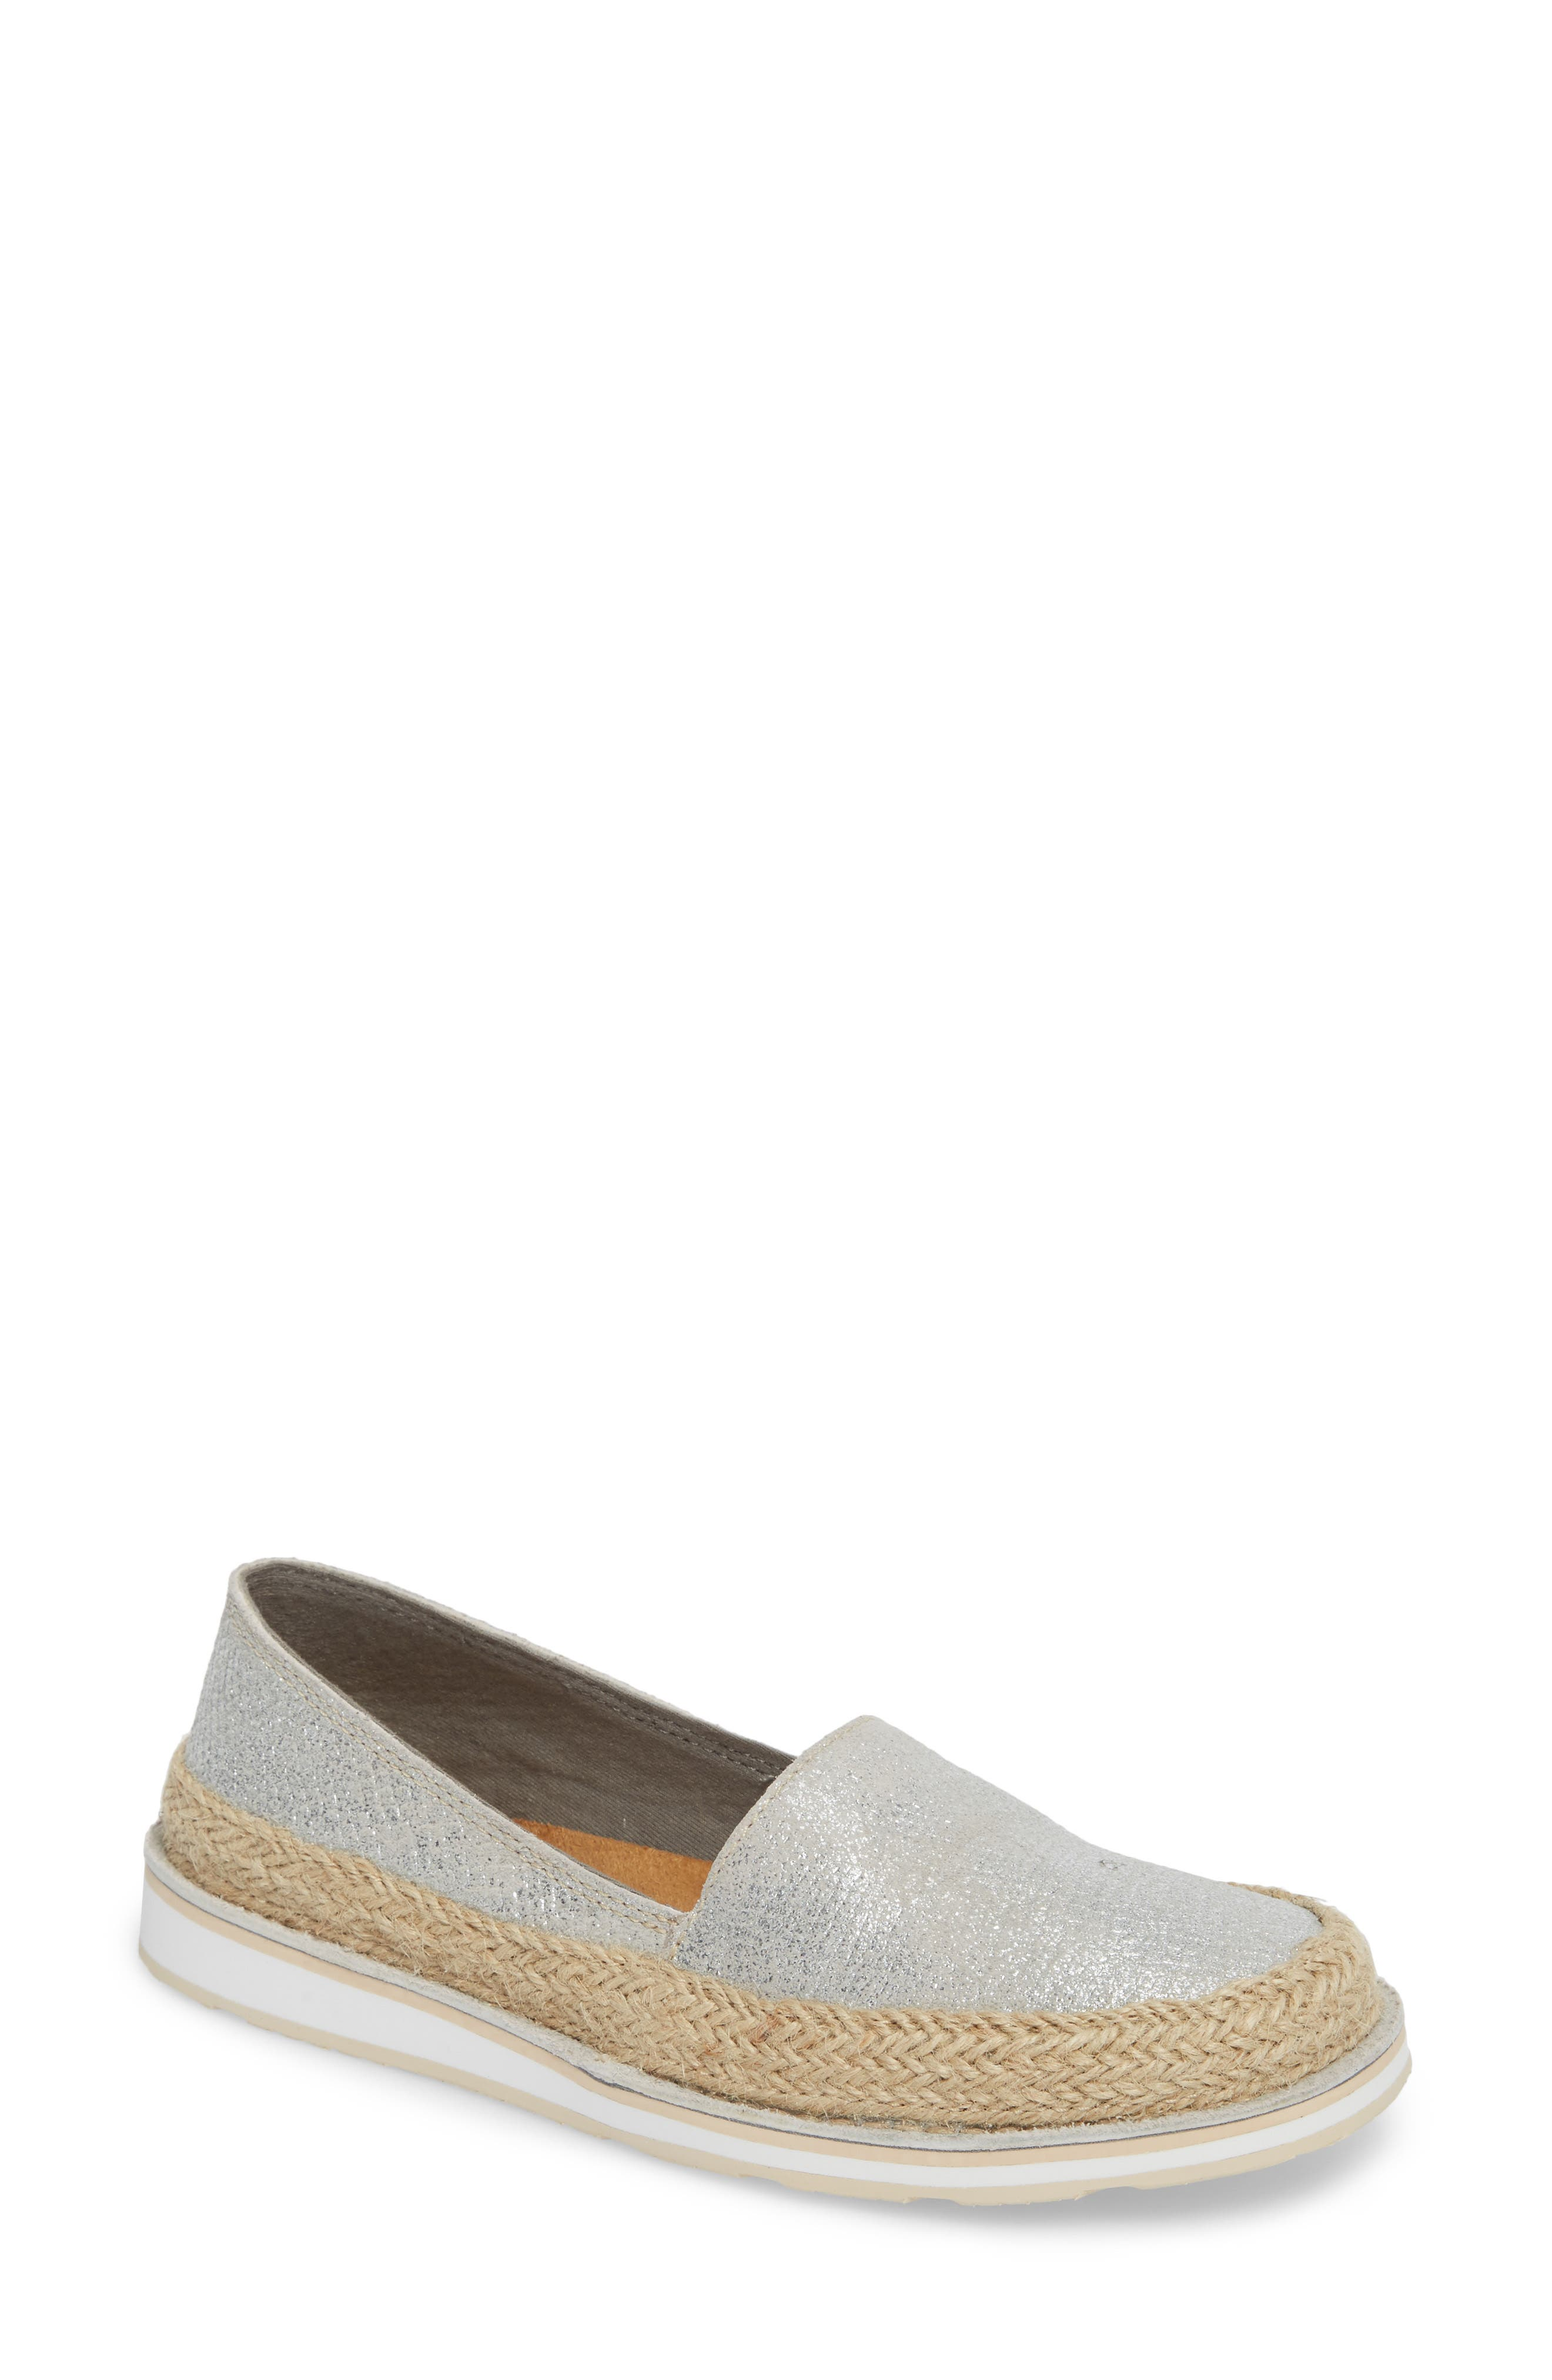 Ariat Cruiser Espadrille Loafer (Women)